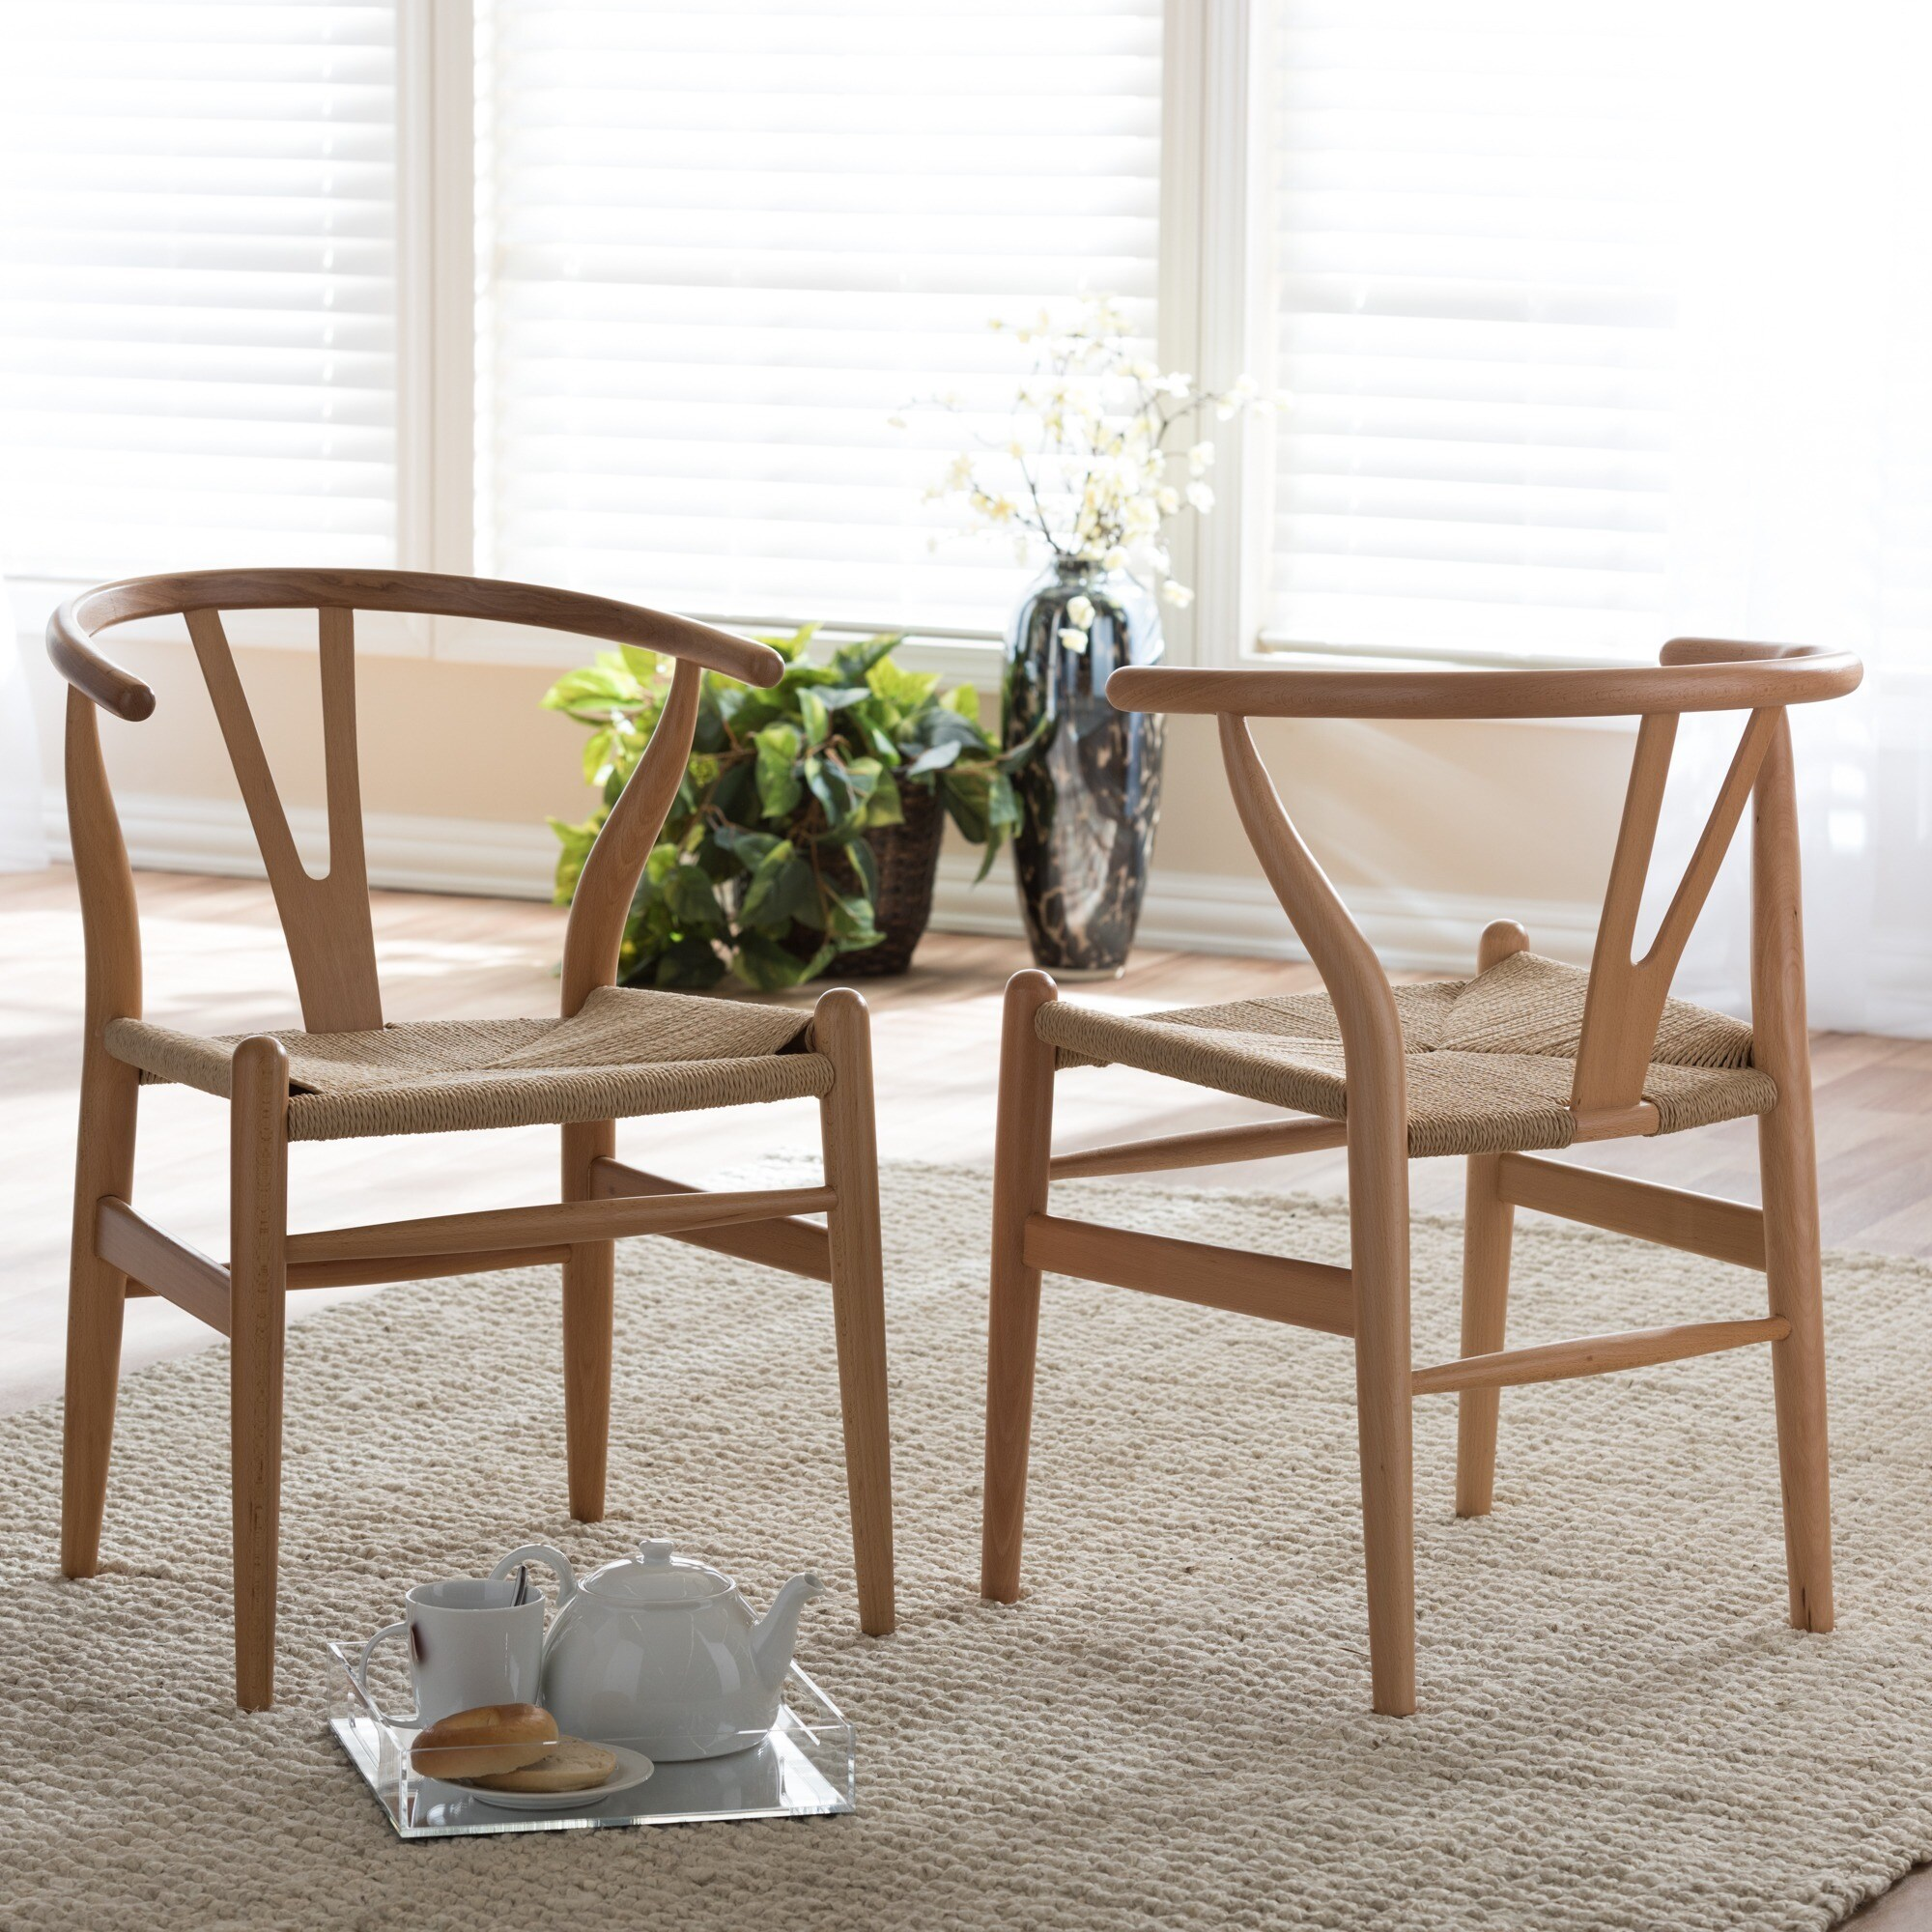 Wishbone Dining Chair Shop Baxton Studio Brown Wood Dining Chair With Hemp Seat Free